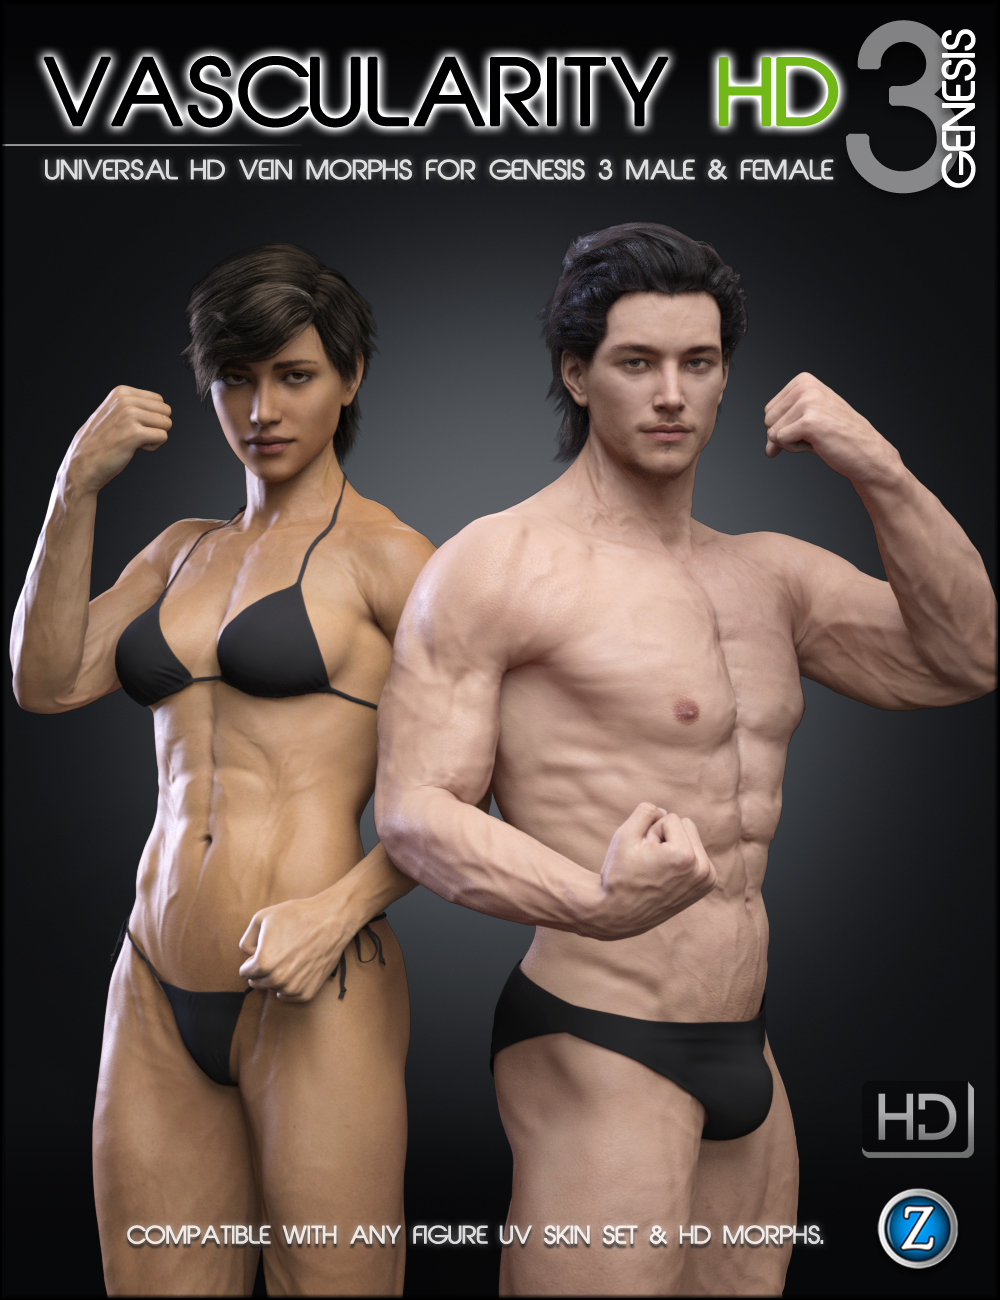 Vascularity HD for Genesis 3 Female(s) and Genesis 3 Male(s) by: Zev0, 3D Models by Daz 3D